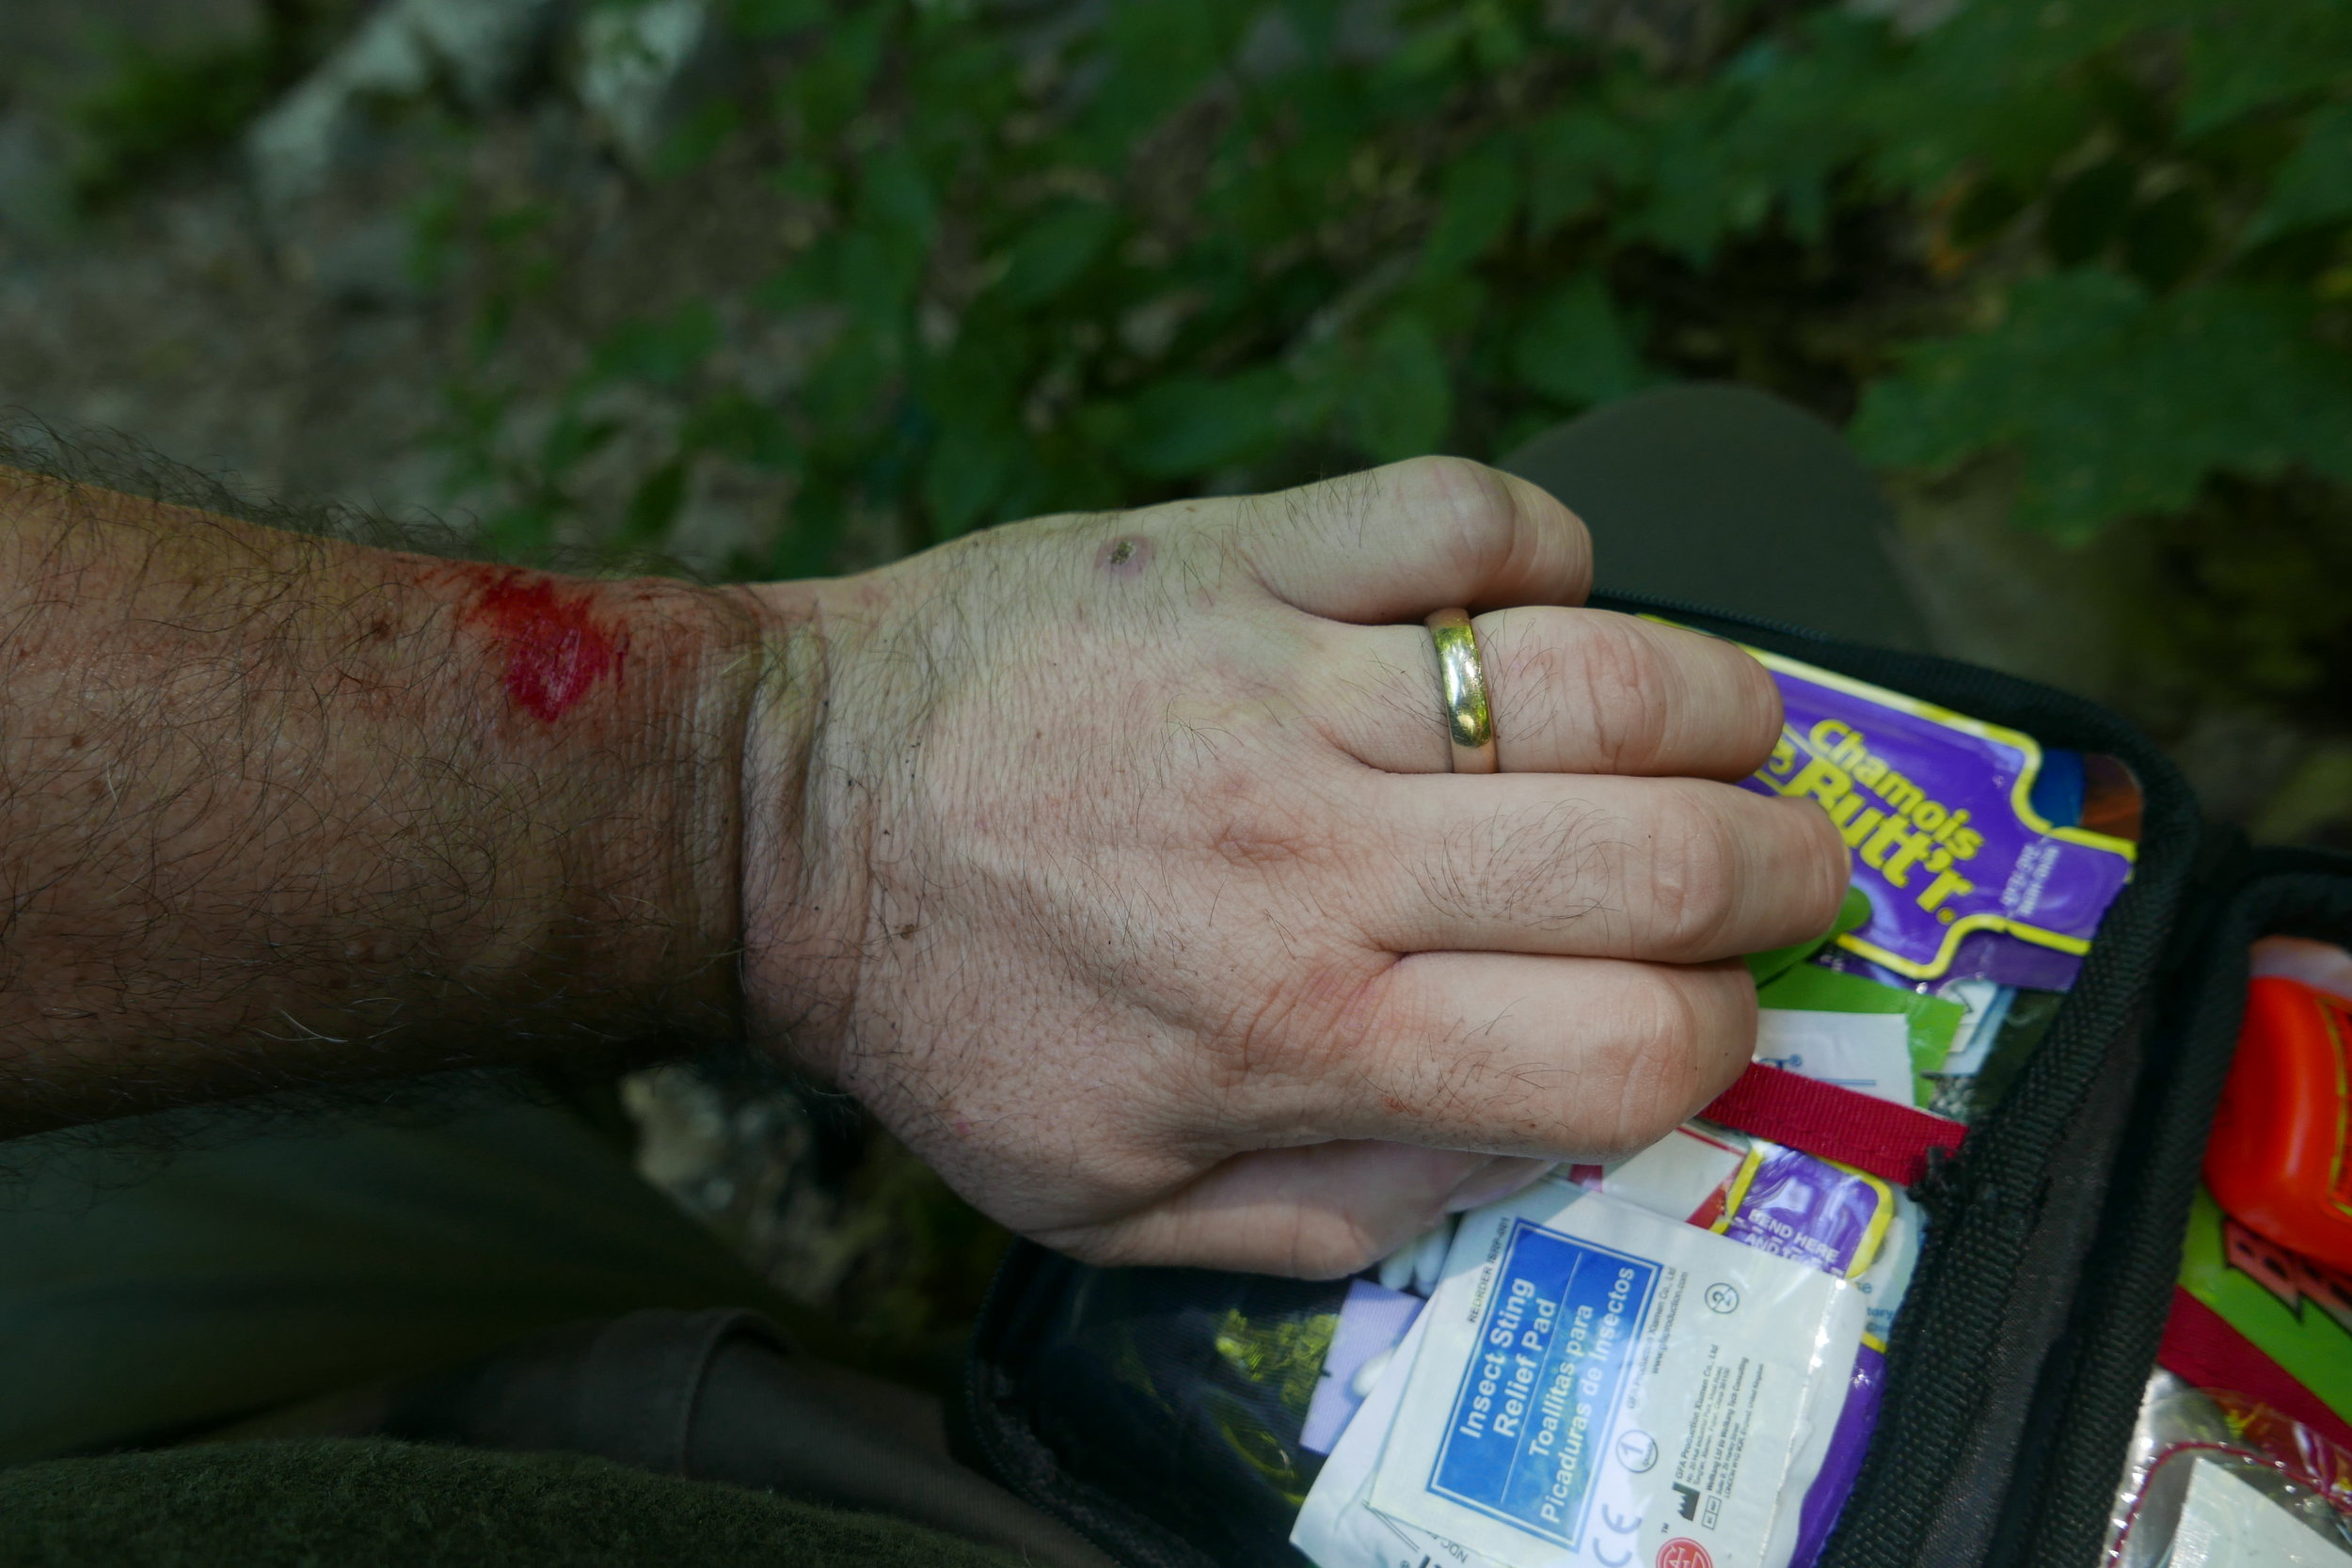 This hiker is Wilderness First Aid certified!